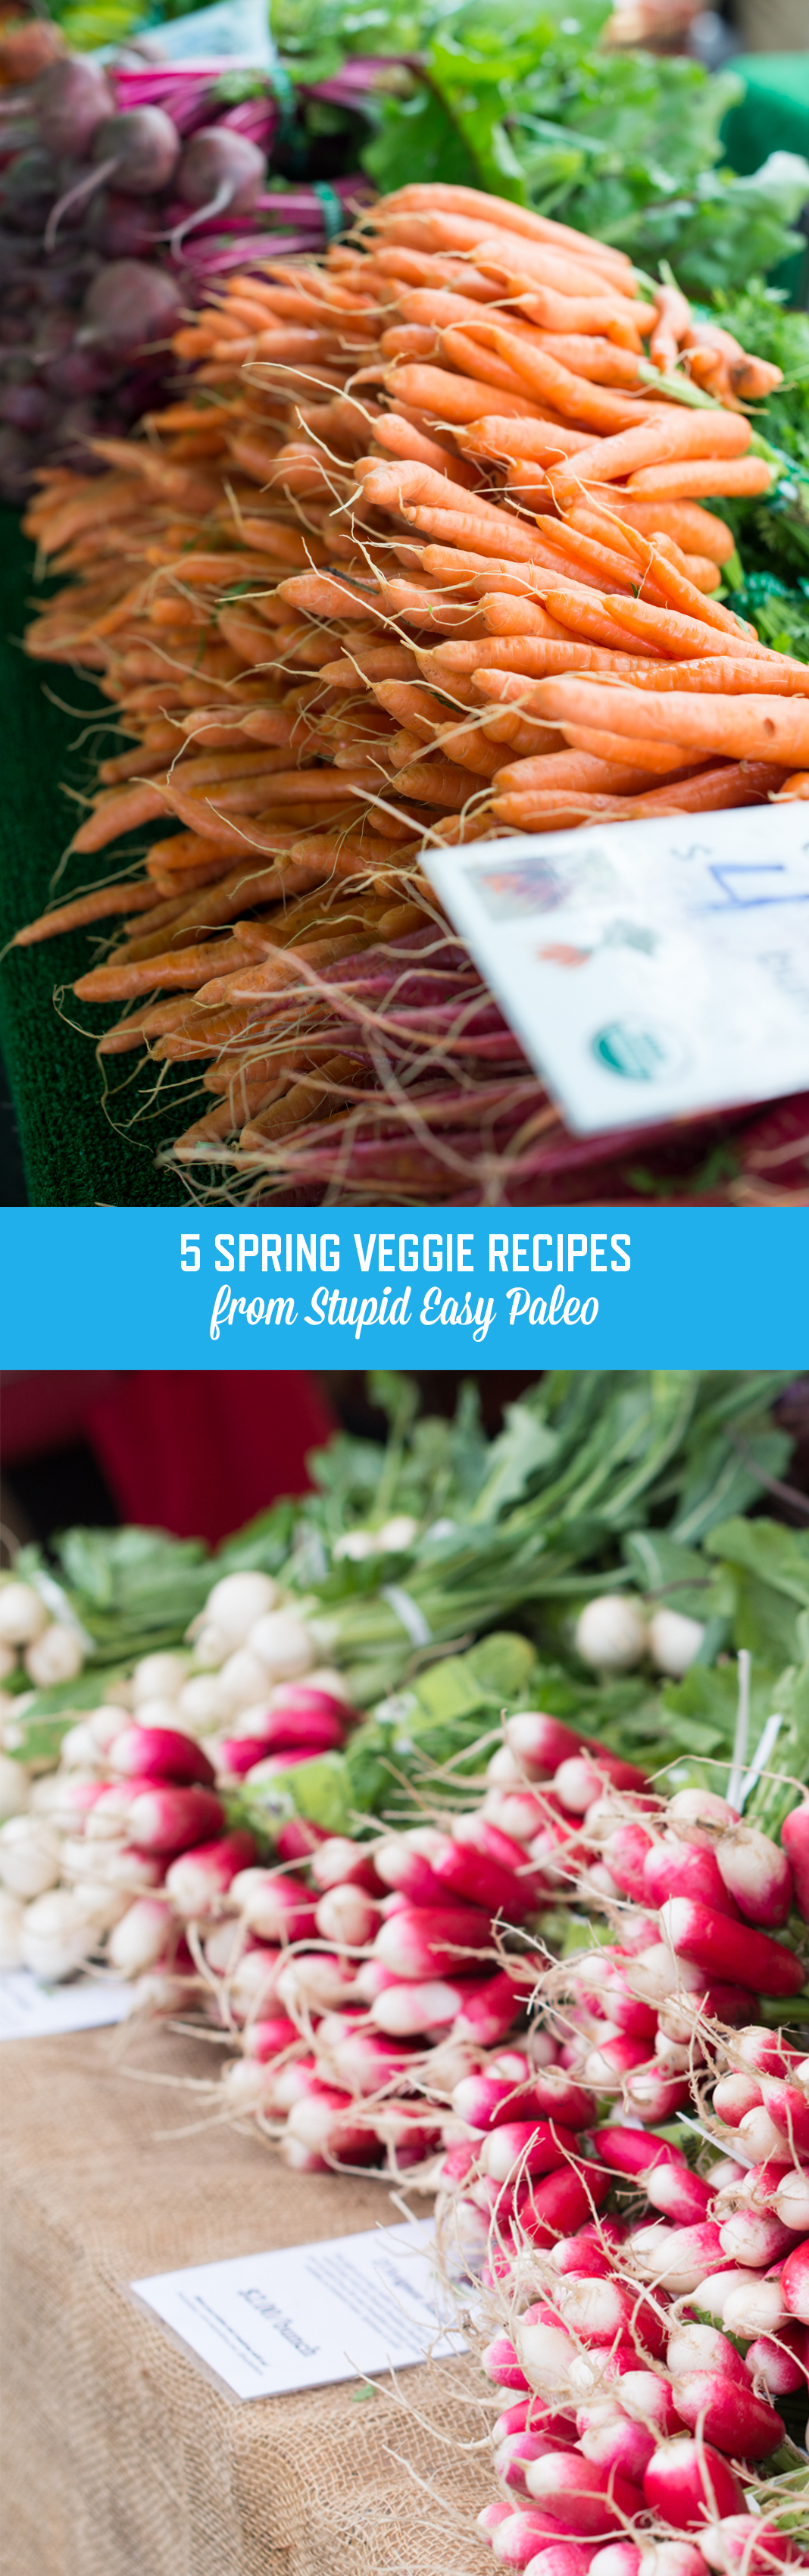 Try these delicious, simple, and healthy spring veggie side dish recipes so you can take advantage of all the best seasonal produce in the market right now!